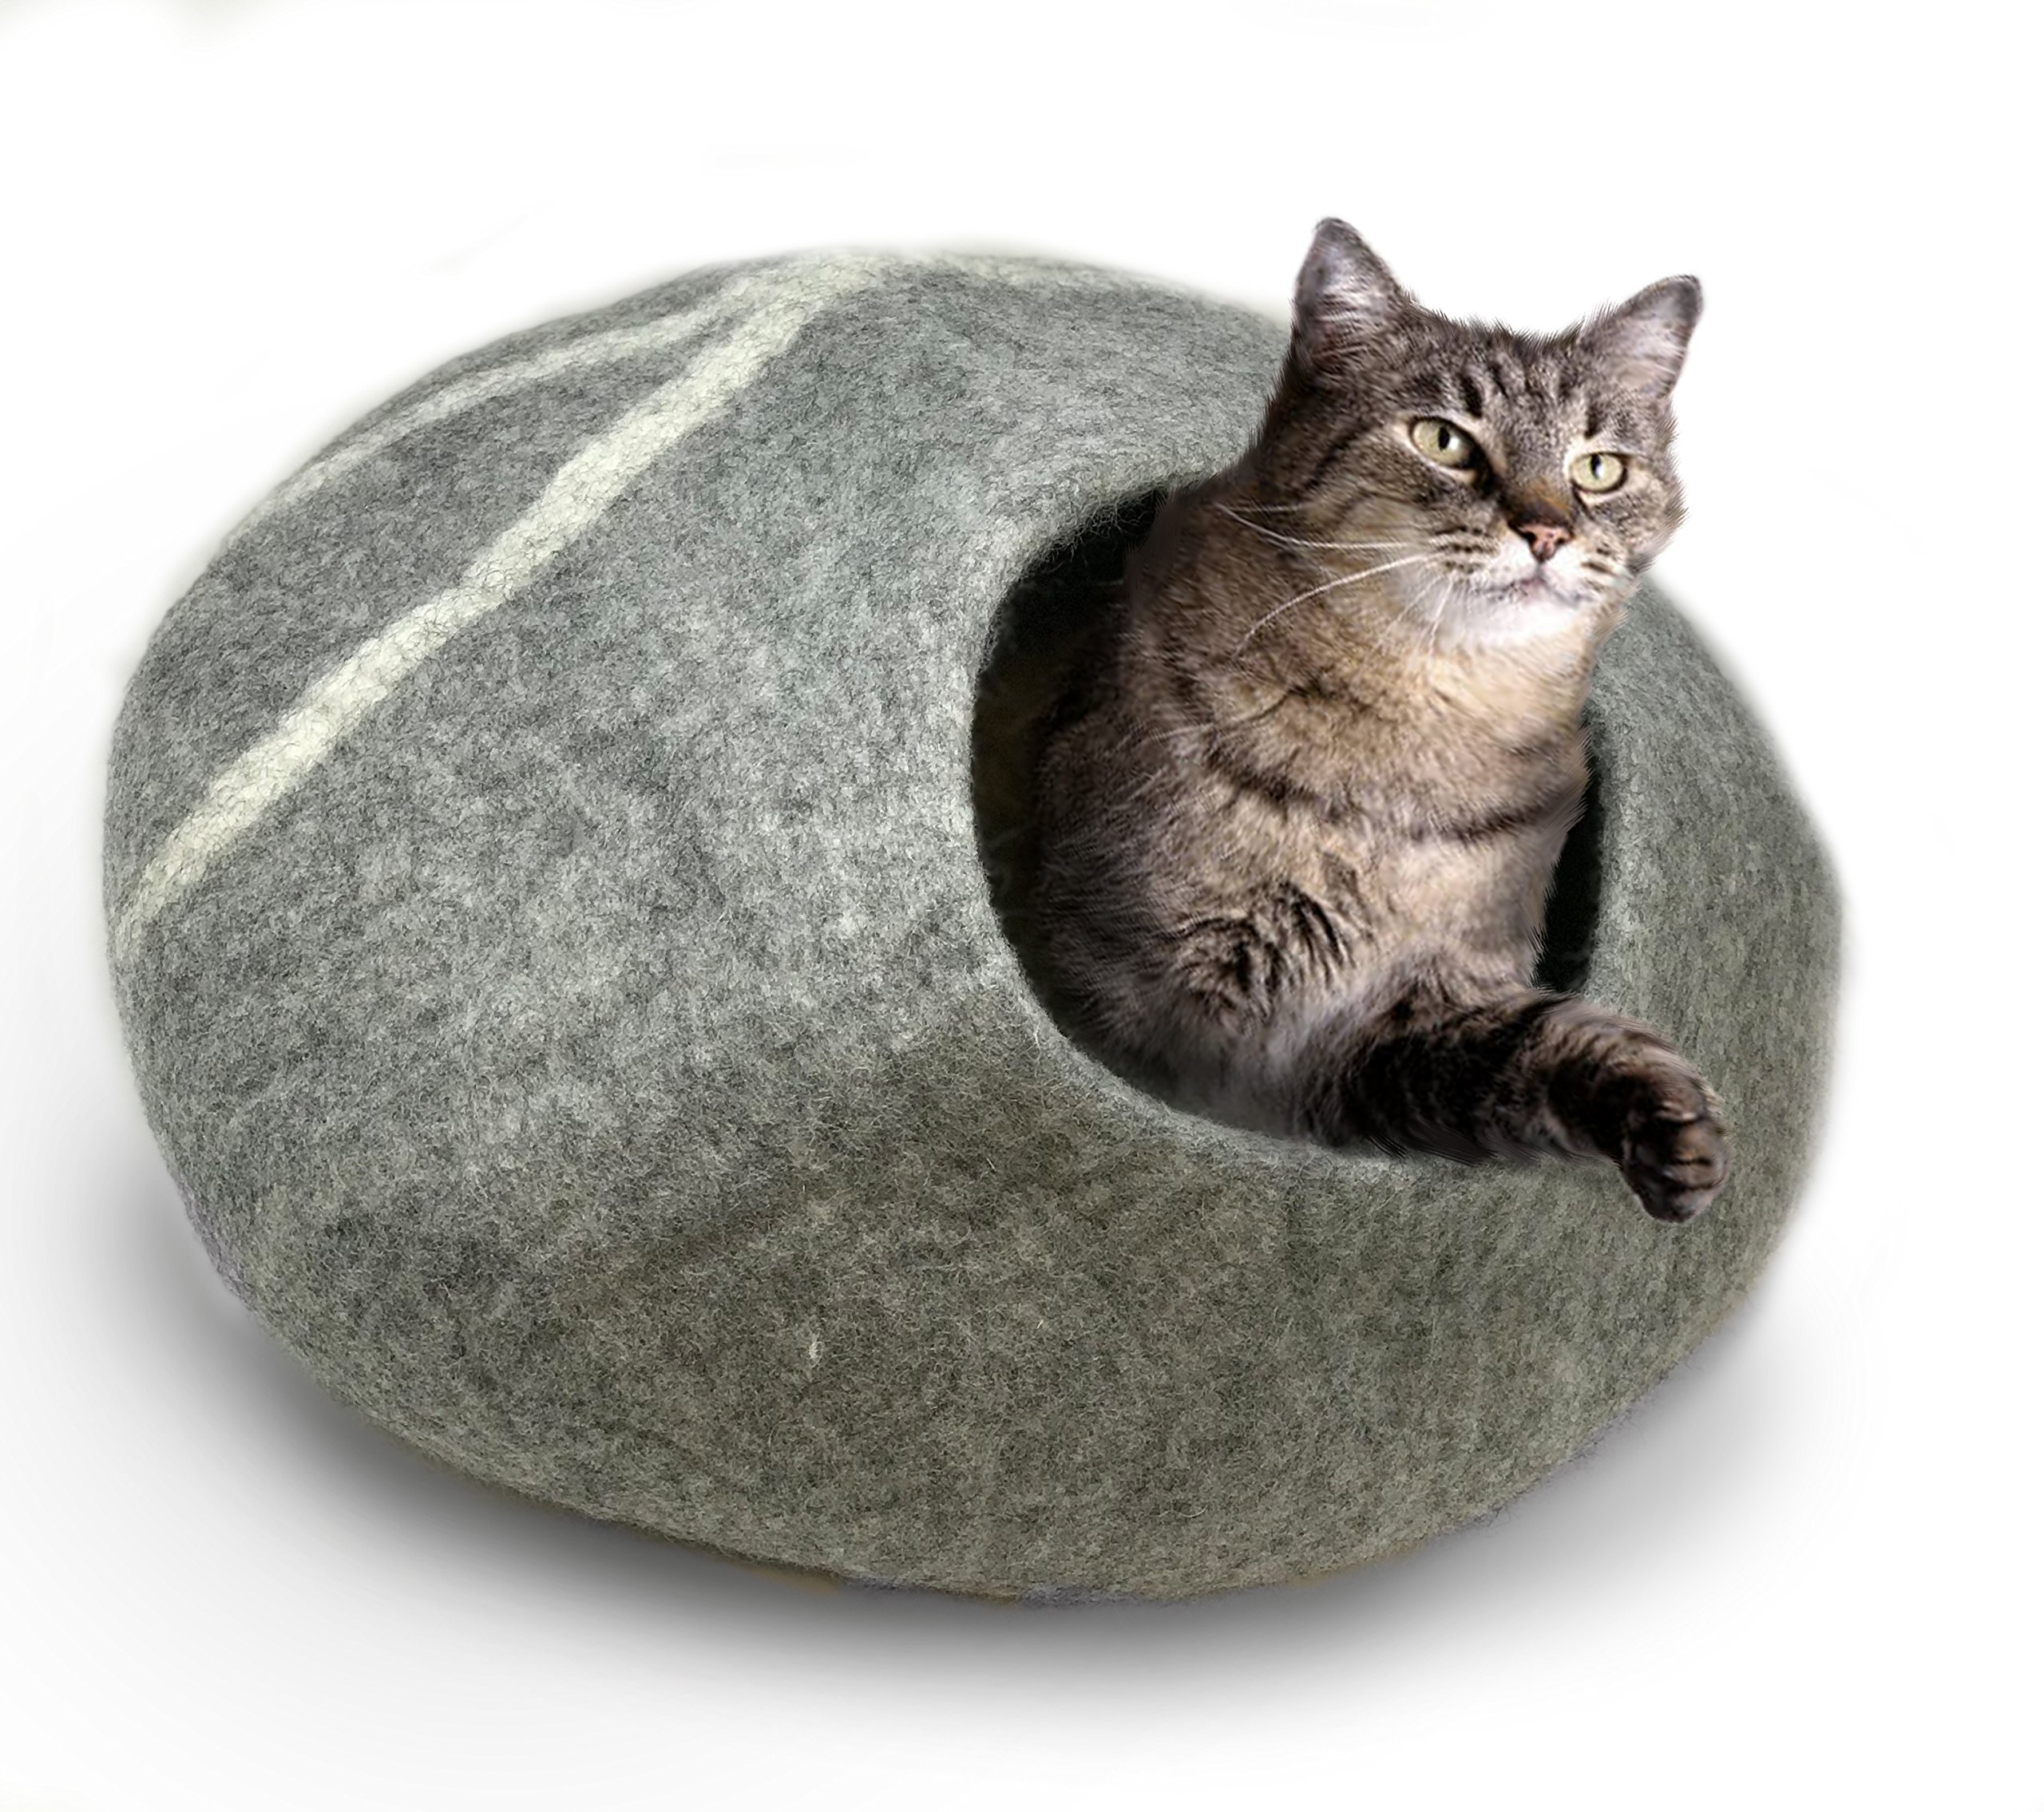 iPrimio 100% Natural Wool Eco-Friendly 40 cm Cat Cave - Handmade Premium Shaped Felt - Makes Great Covered Cat House and Bed for Cats & Kittens - for Indoor Cozy Hideaway((Light Gray) by iPrimio